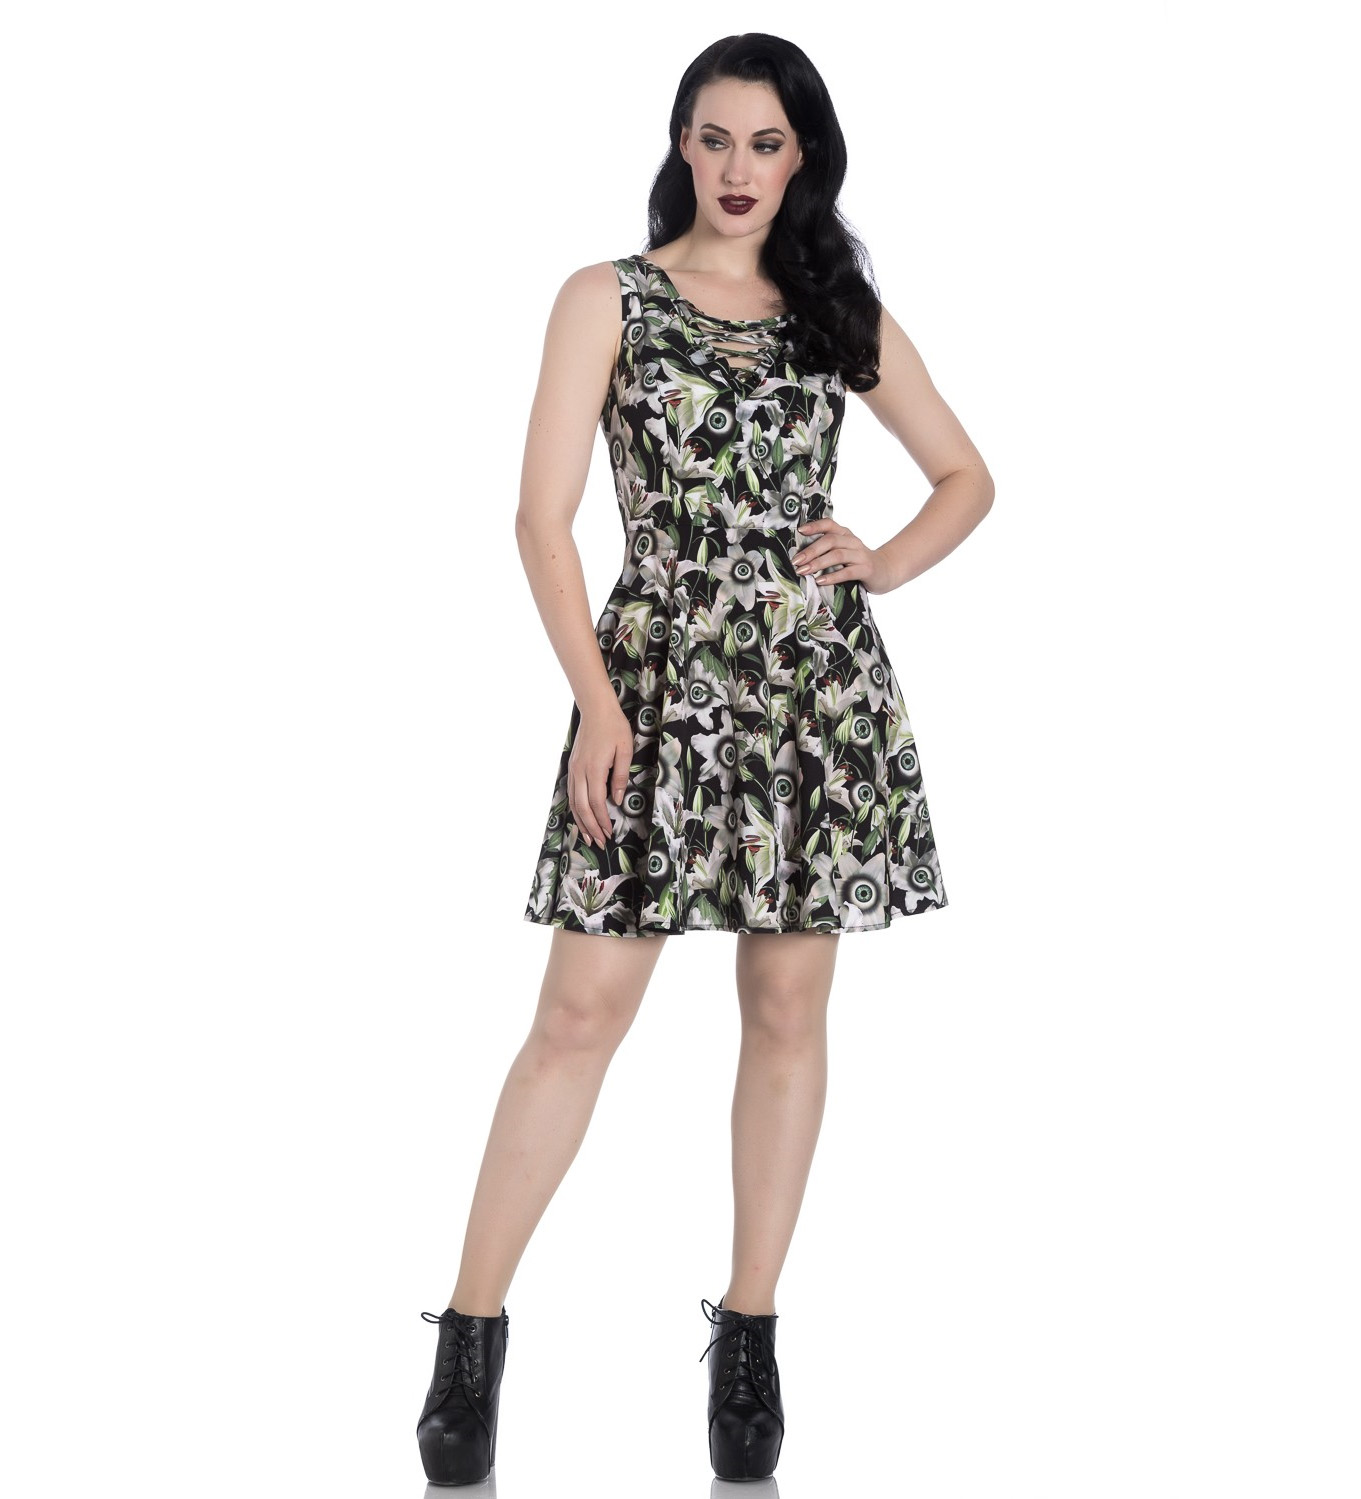 Hell-Bunny-Black-Lace-Up-Goth-Punk-Mini-Dress-PEEPERS-Eyeballs-Flowers-All-Sizes thumbnail 15